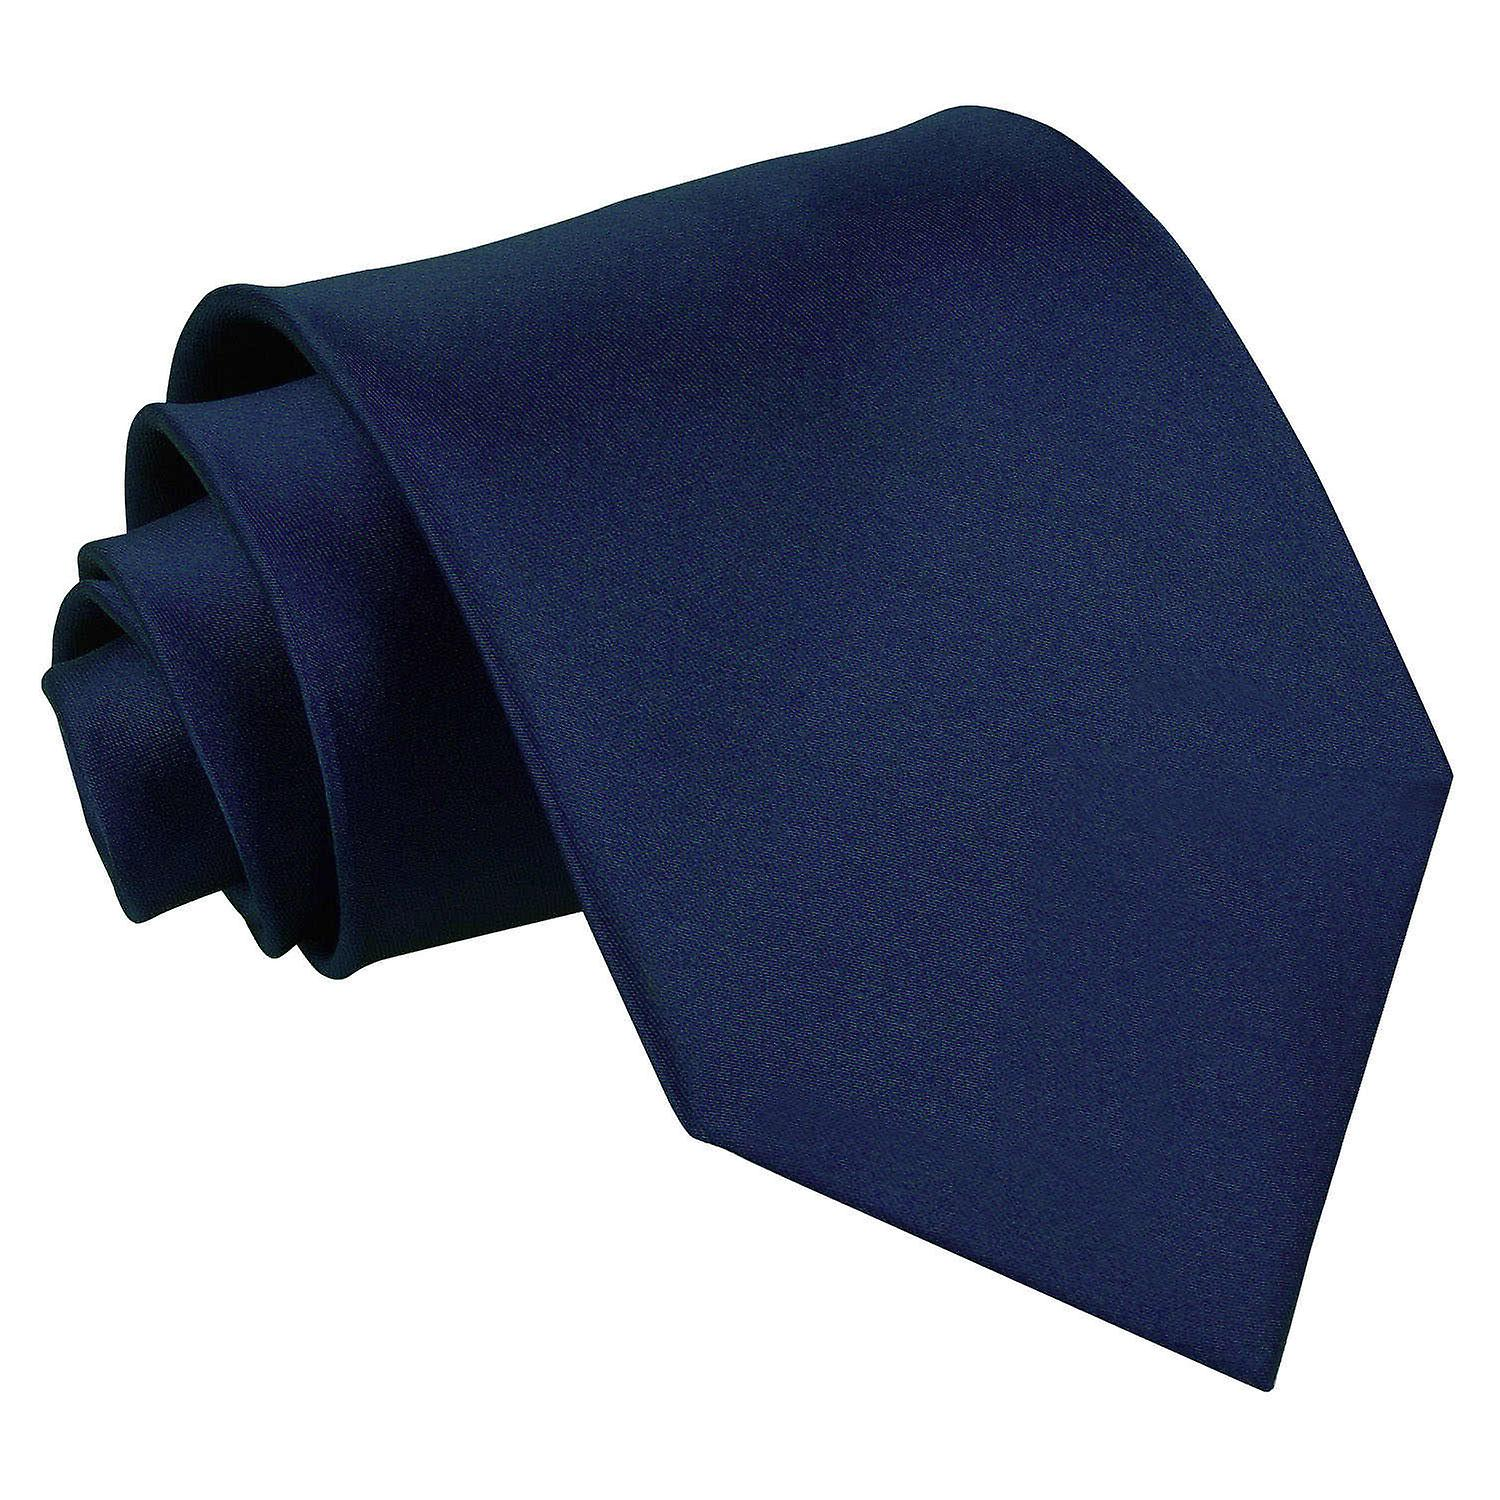 Plain Navy Blue Satin Tie